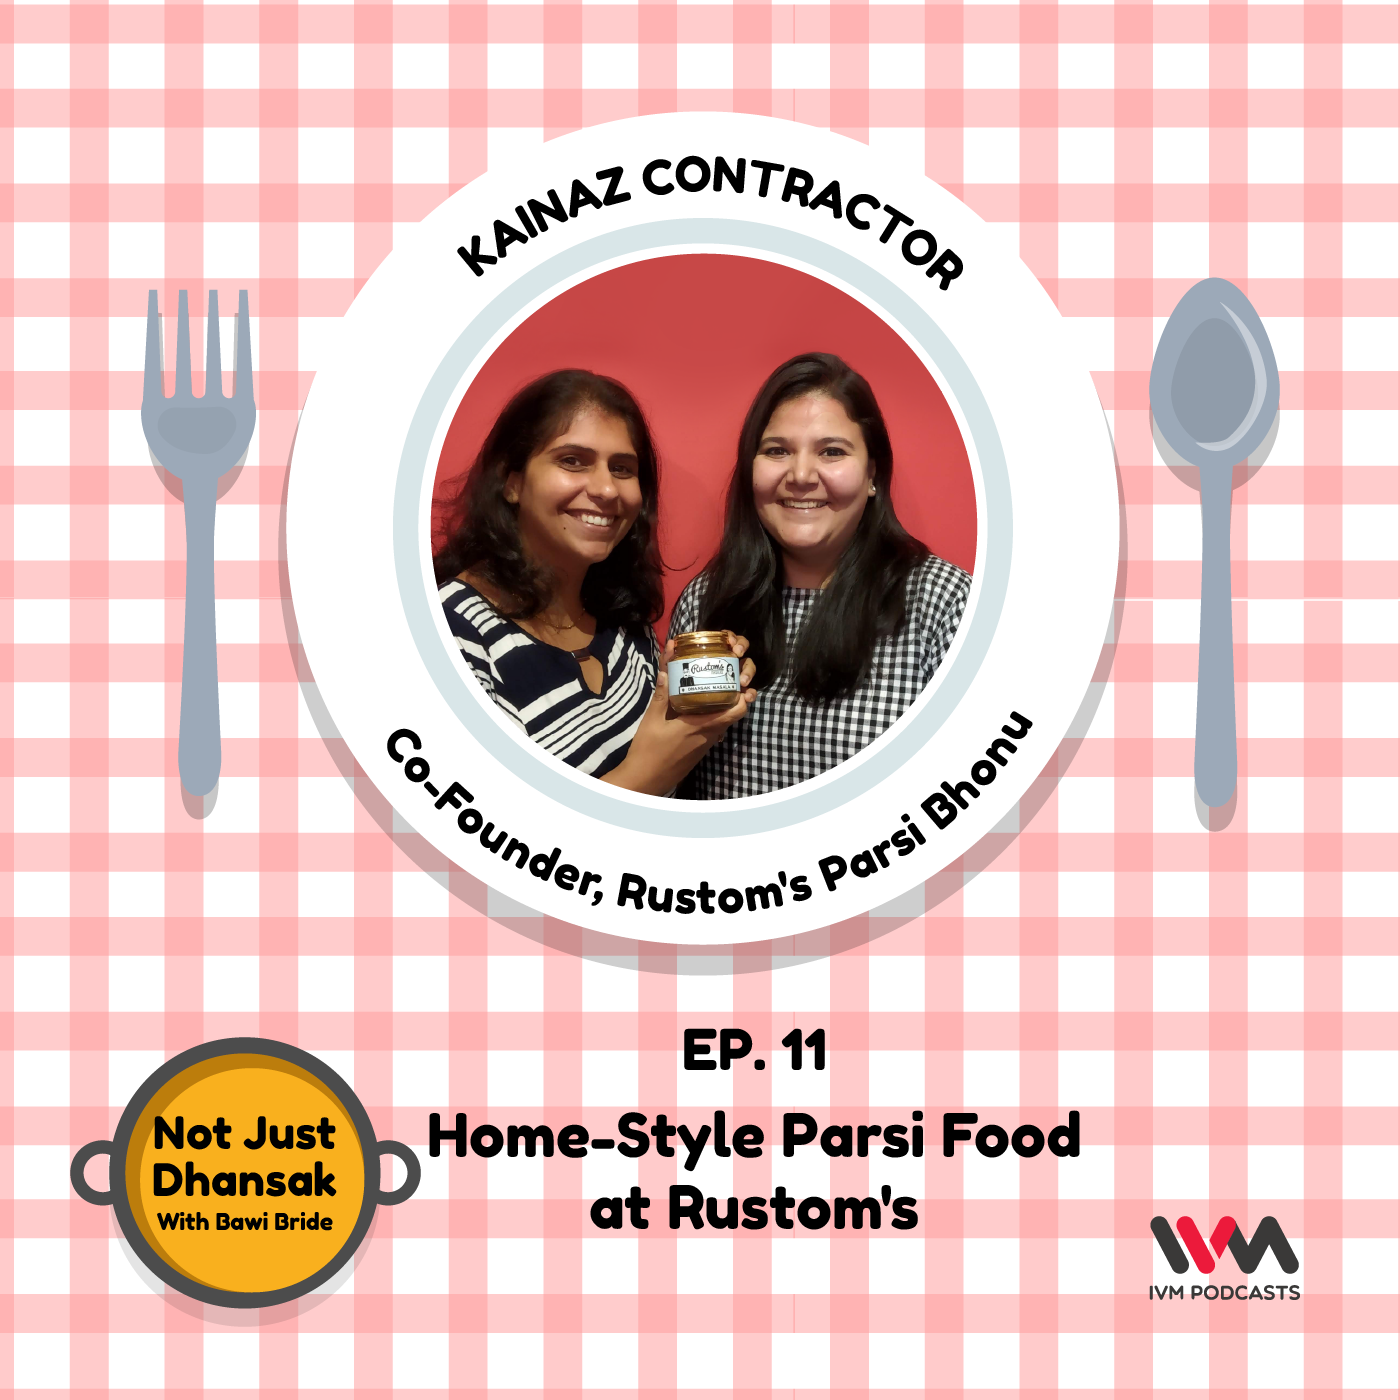 Ep. 11: Home-Style Parsi Food at Rustom's